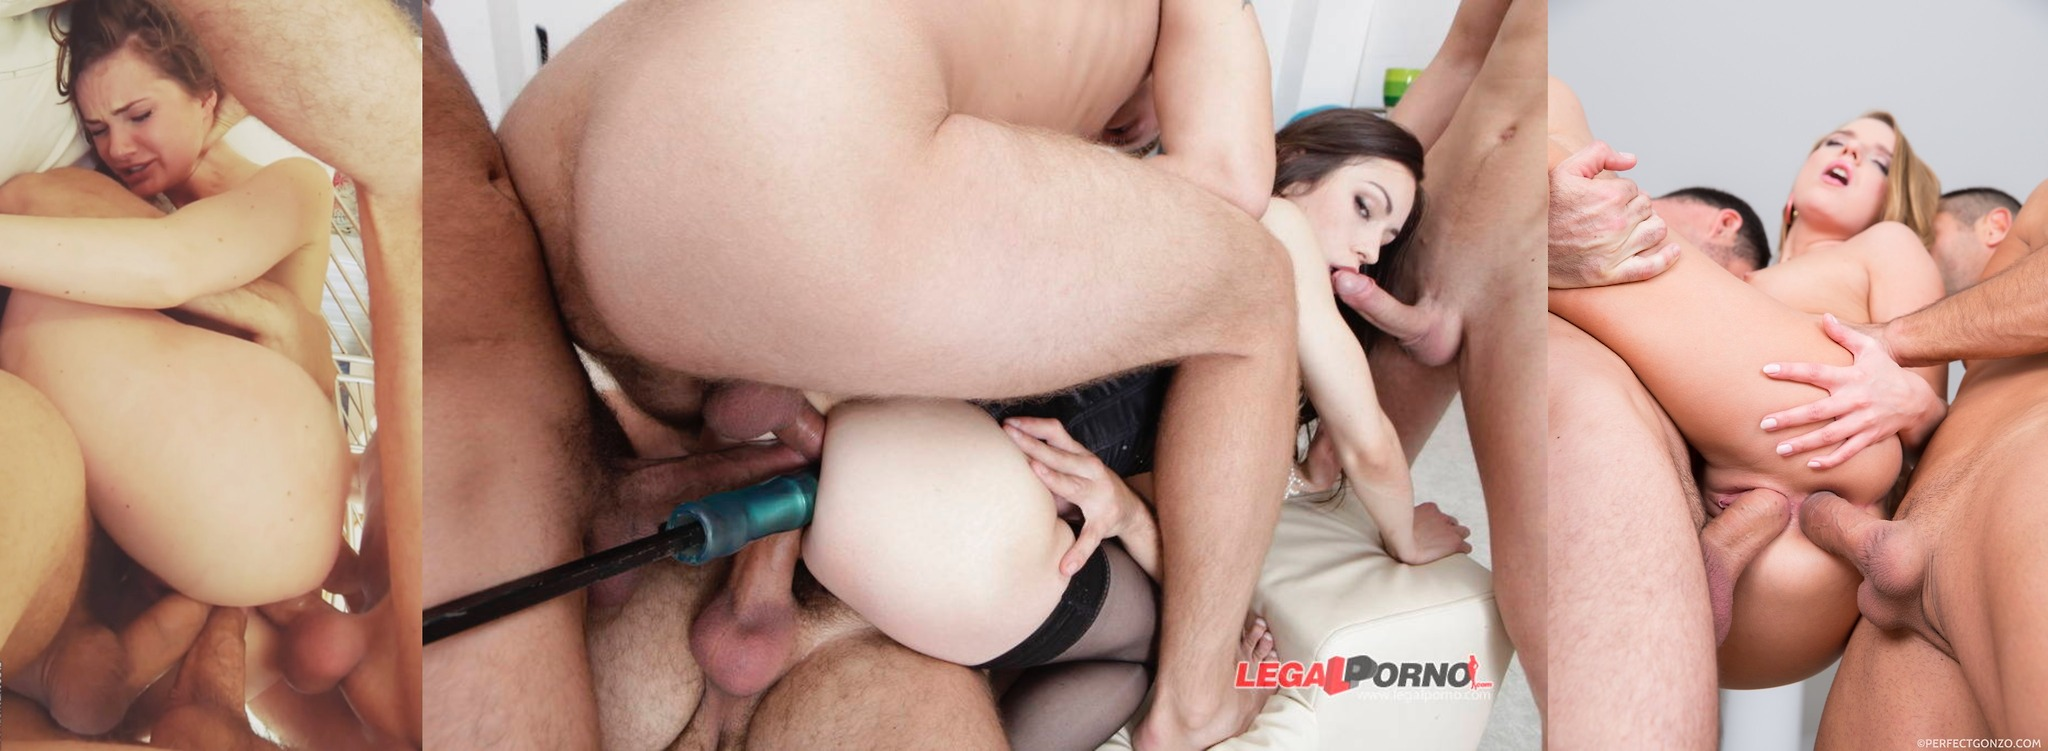 Gangbang sex video com